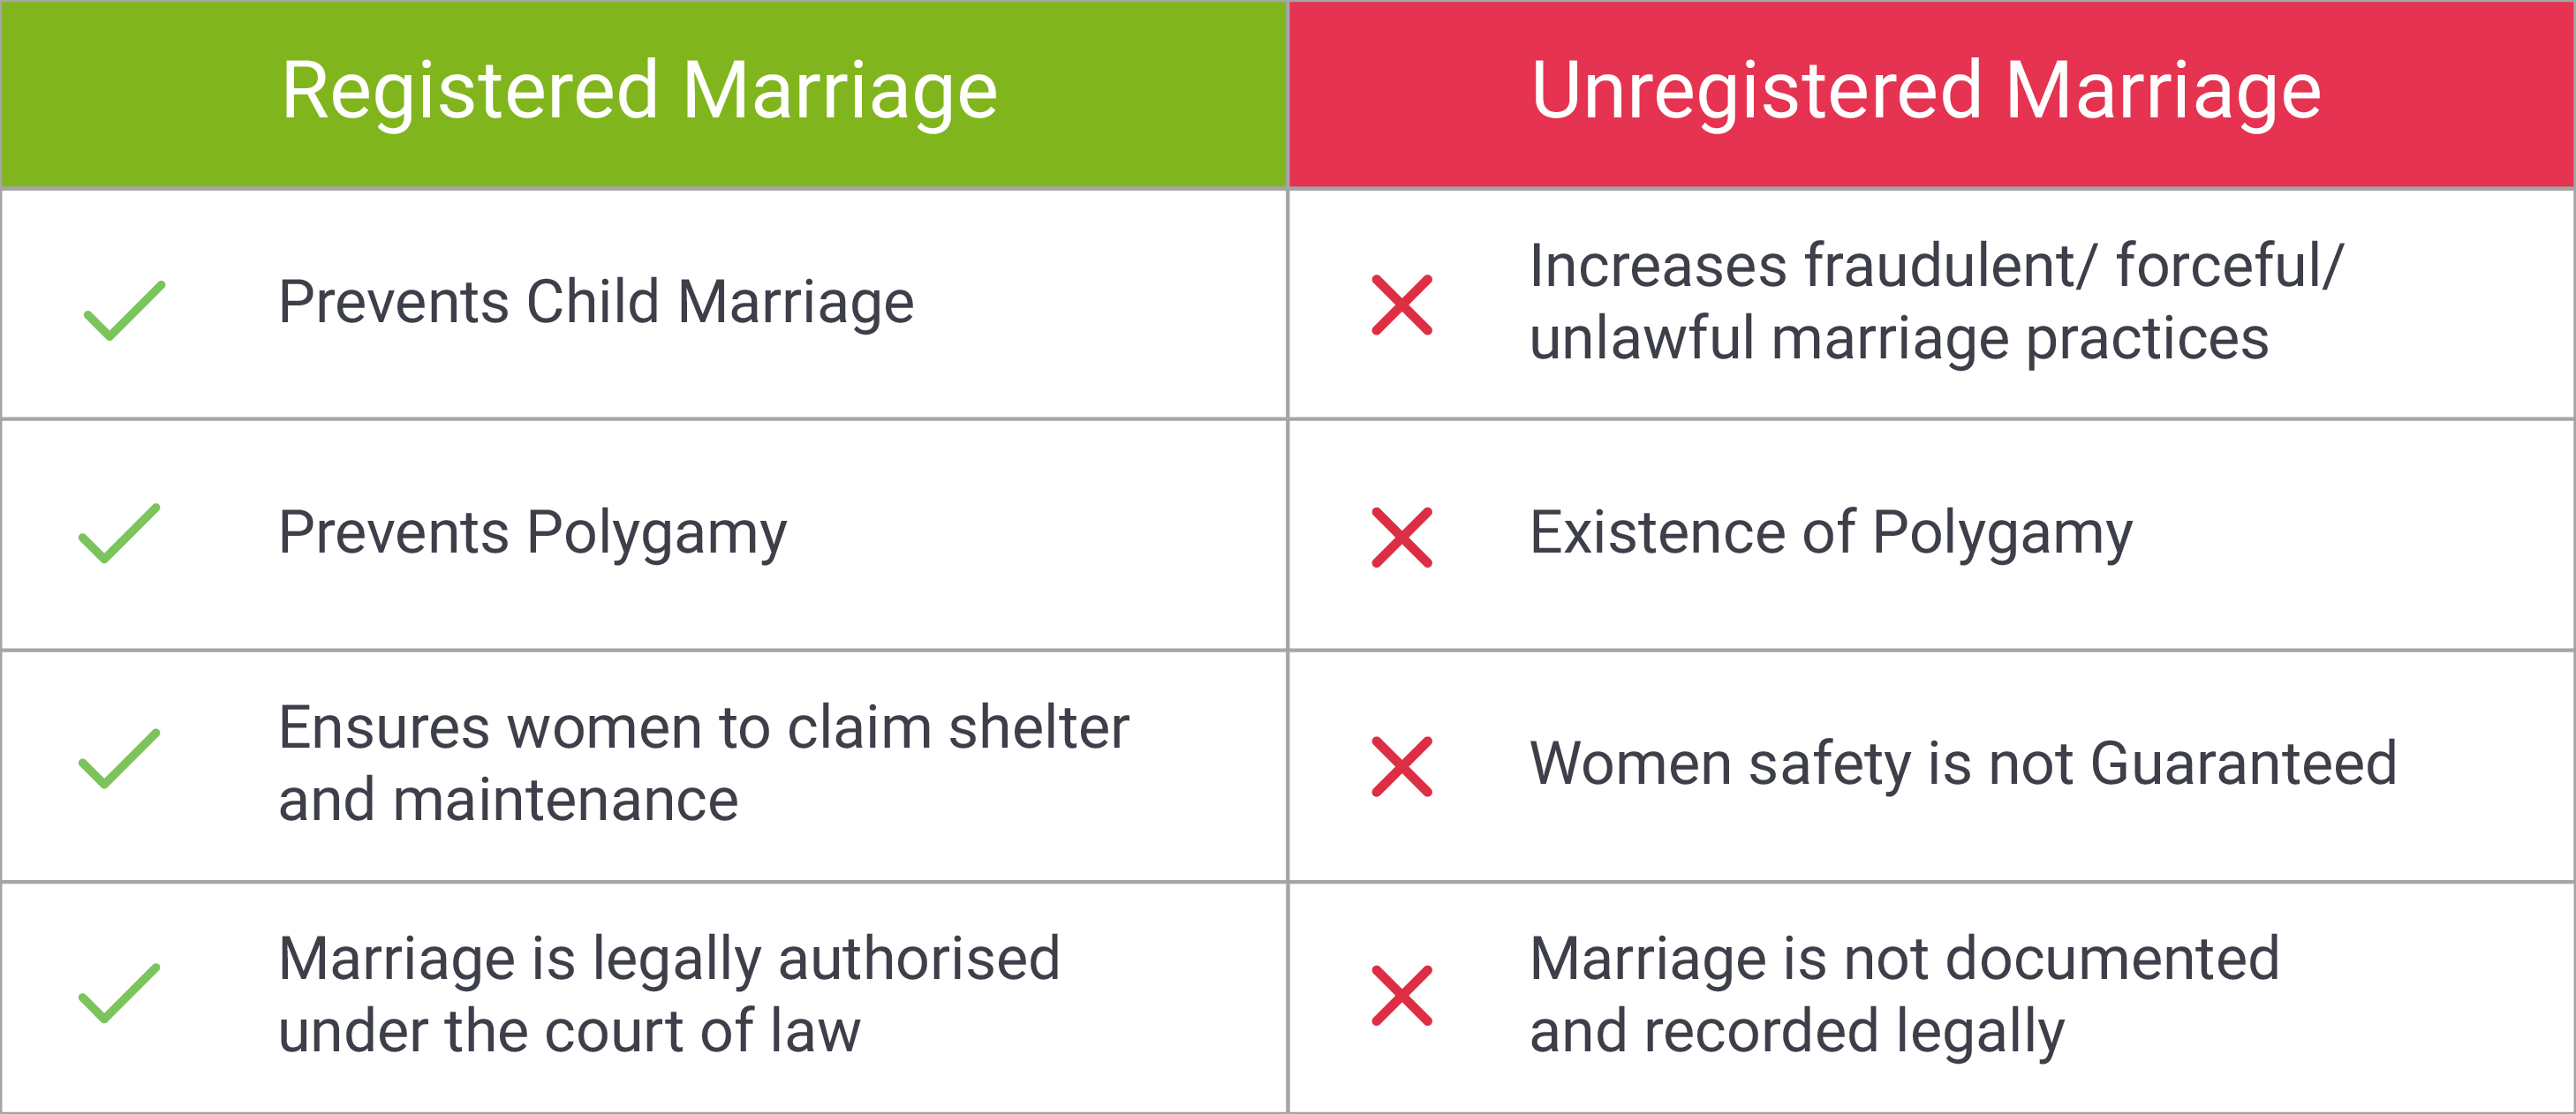 difference between registered marriage and unregistered marriage